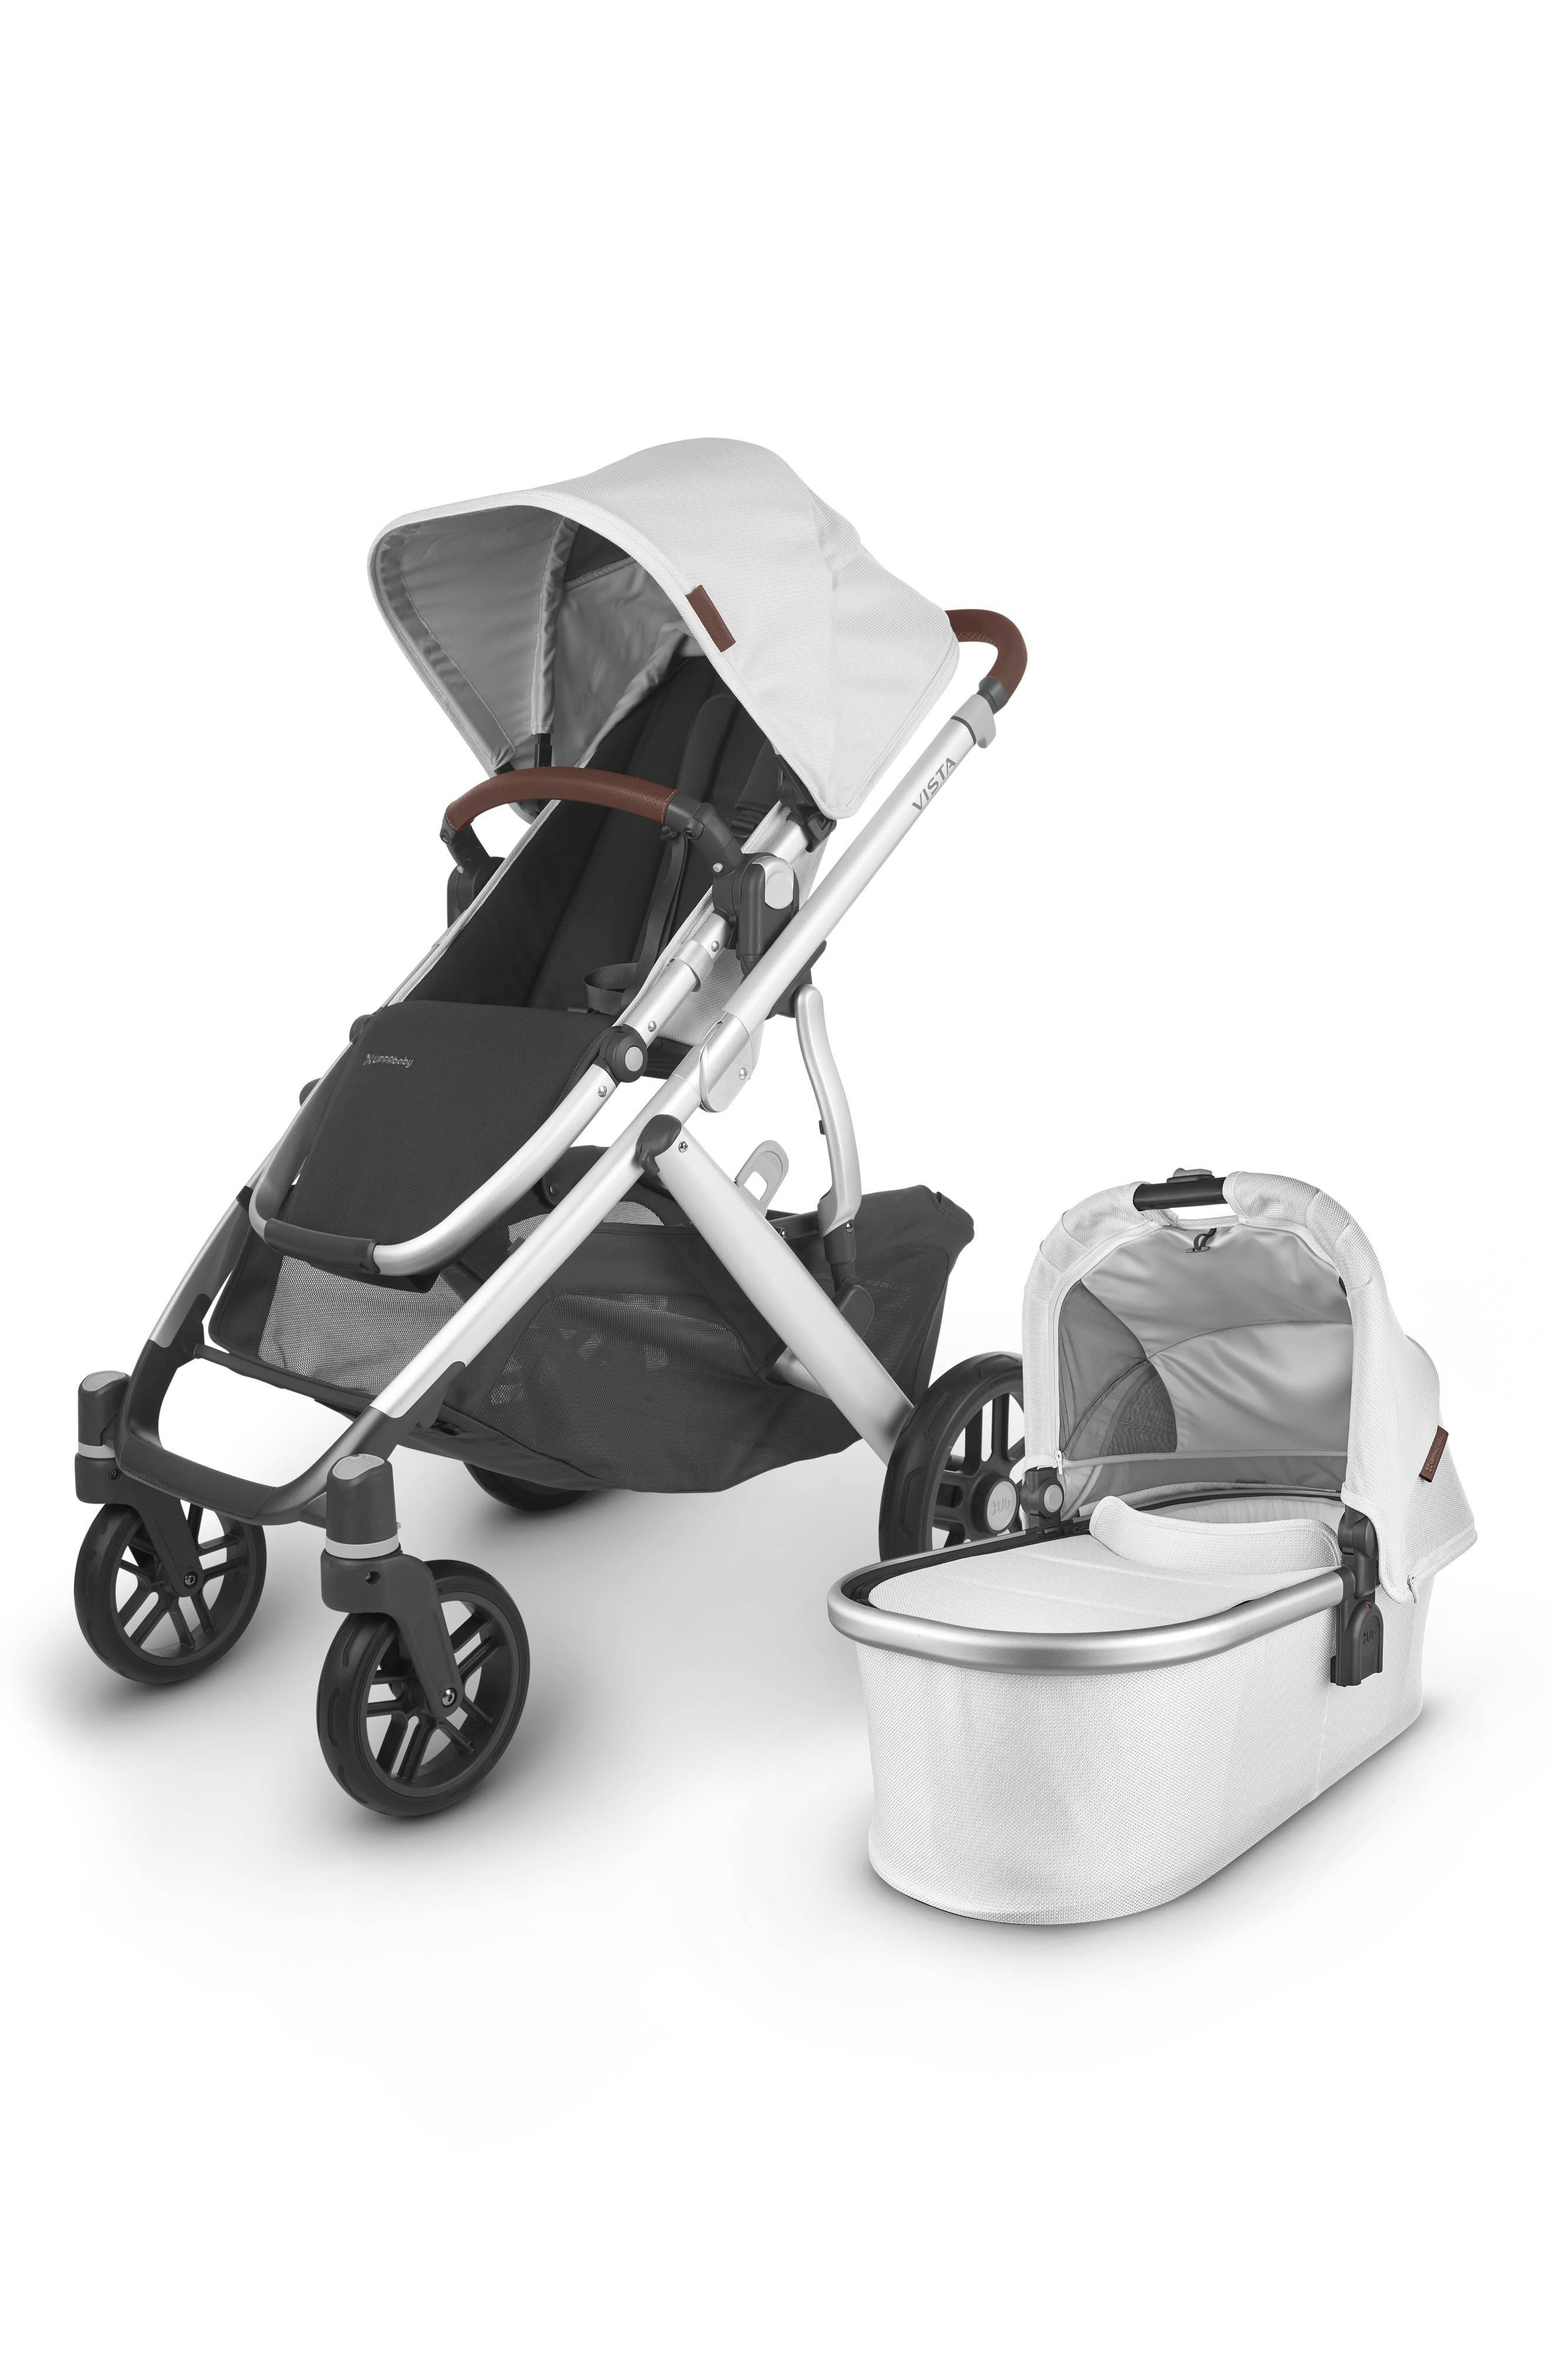 UPPAbaby Infant Uppababy Vista V2 Stroller With Bassinet, Size One Size - White